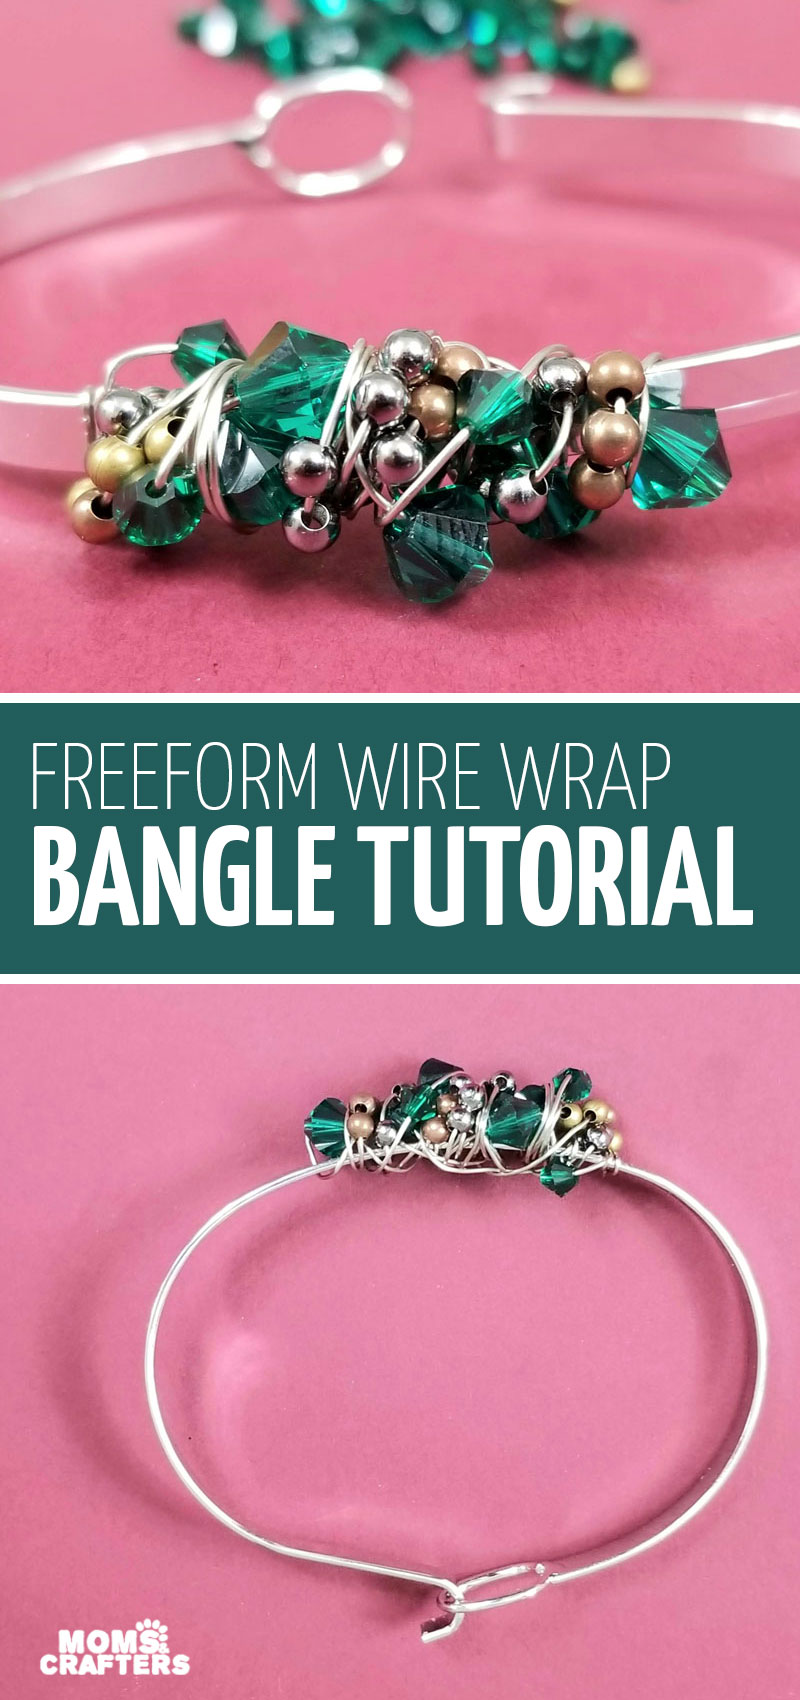 Click for this super duper easy wire wrapped bangle bracelet tutorial - a fun DIY wire wrapping project and jewery making idea for beginners through advanced!